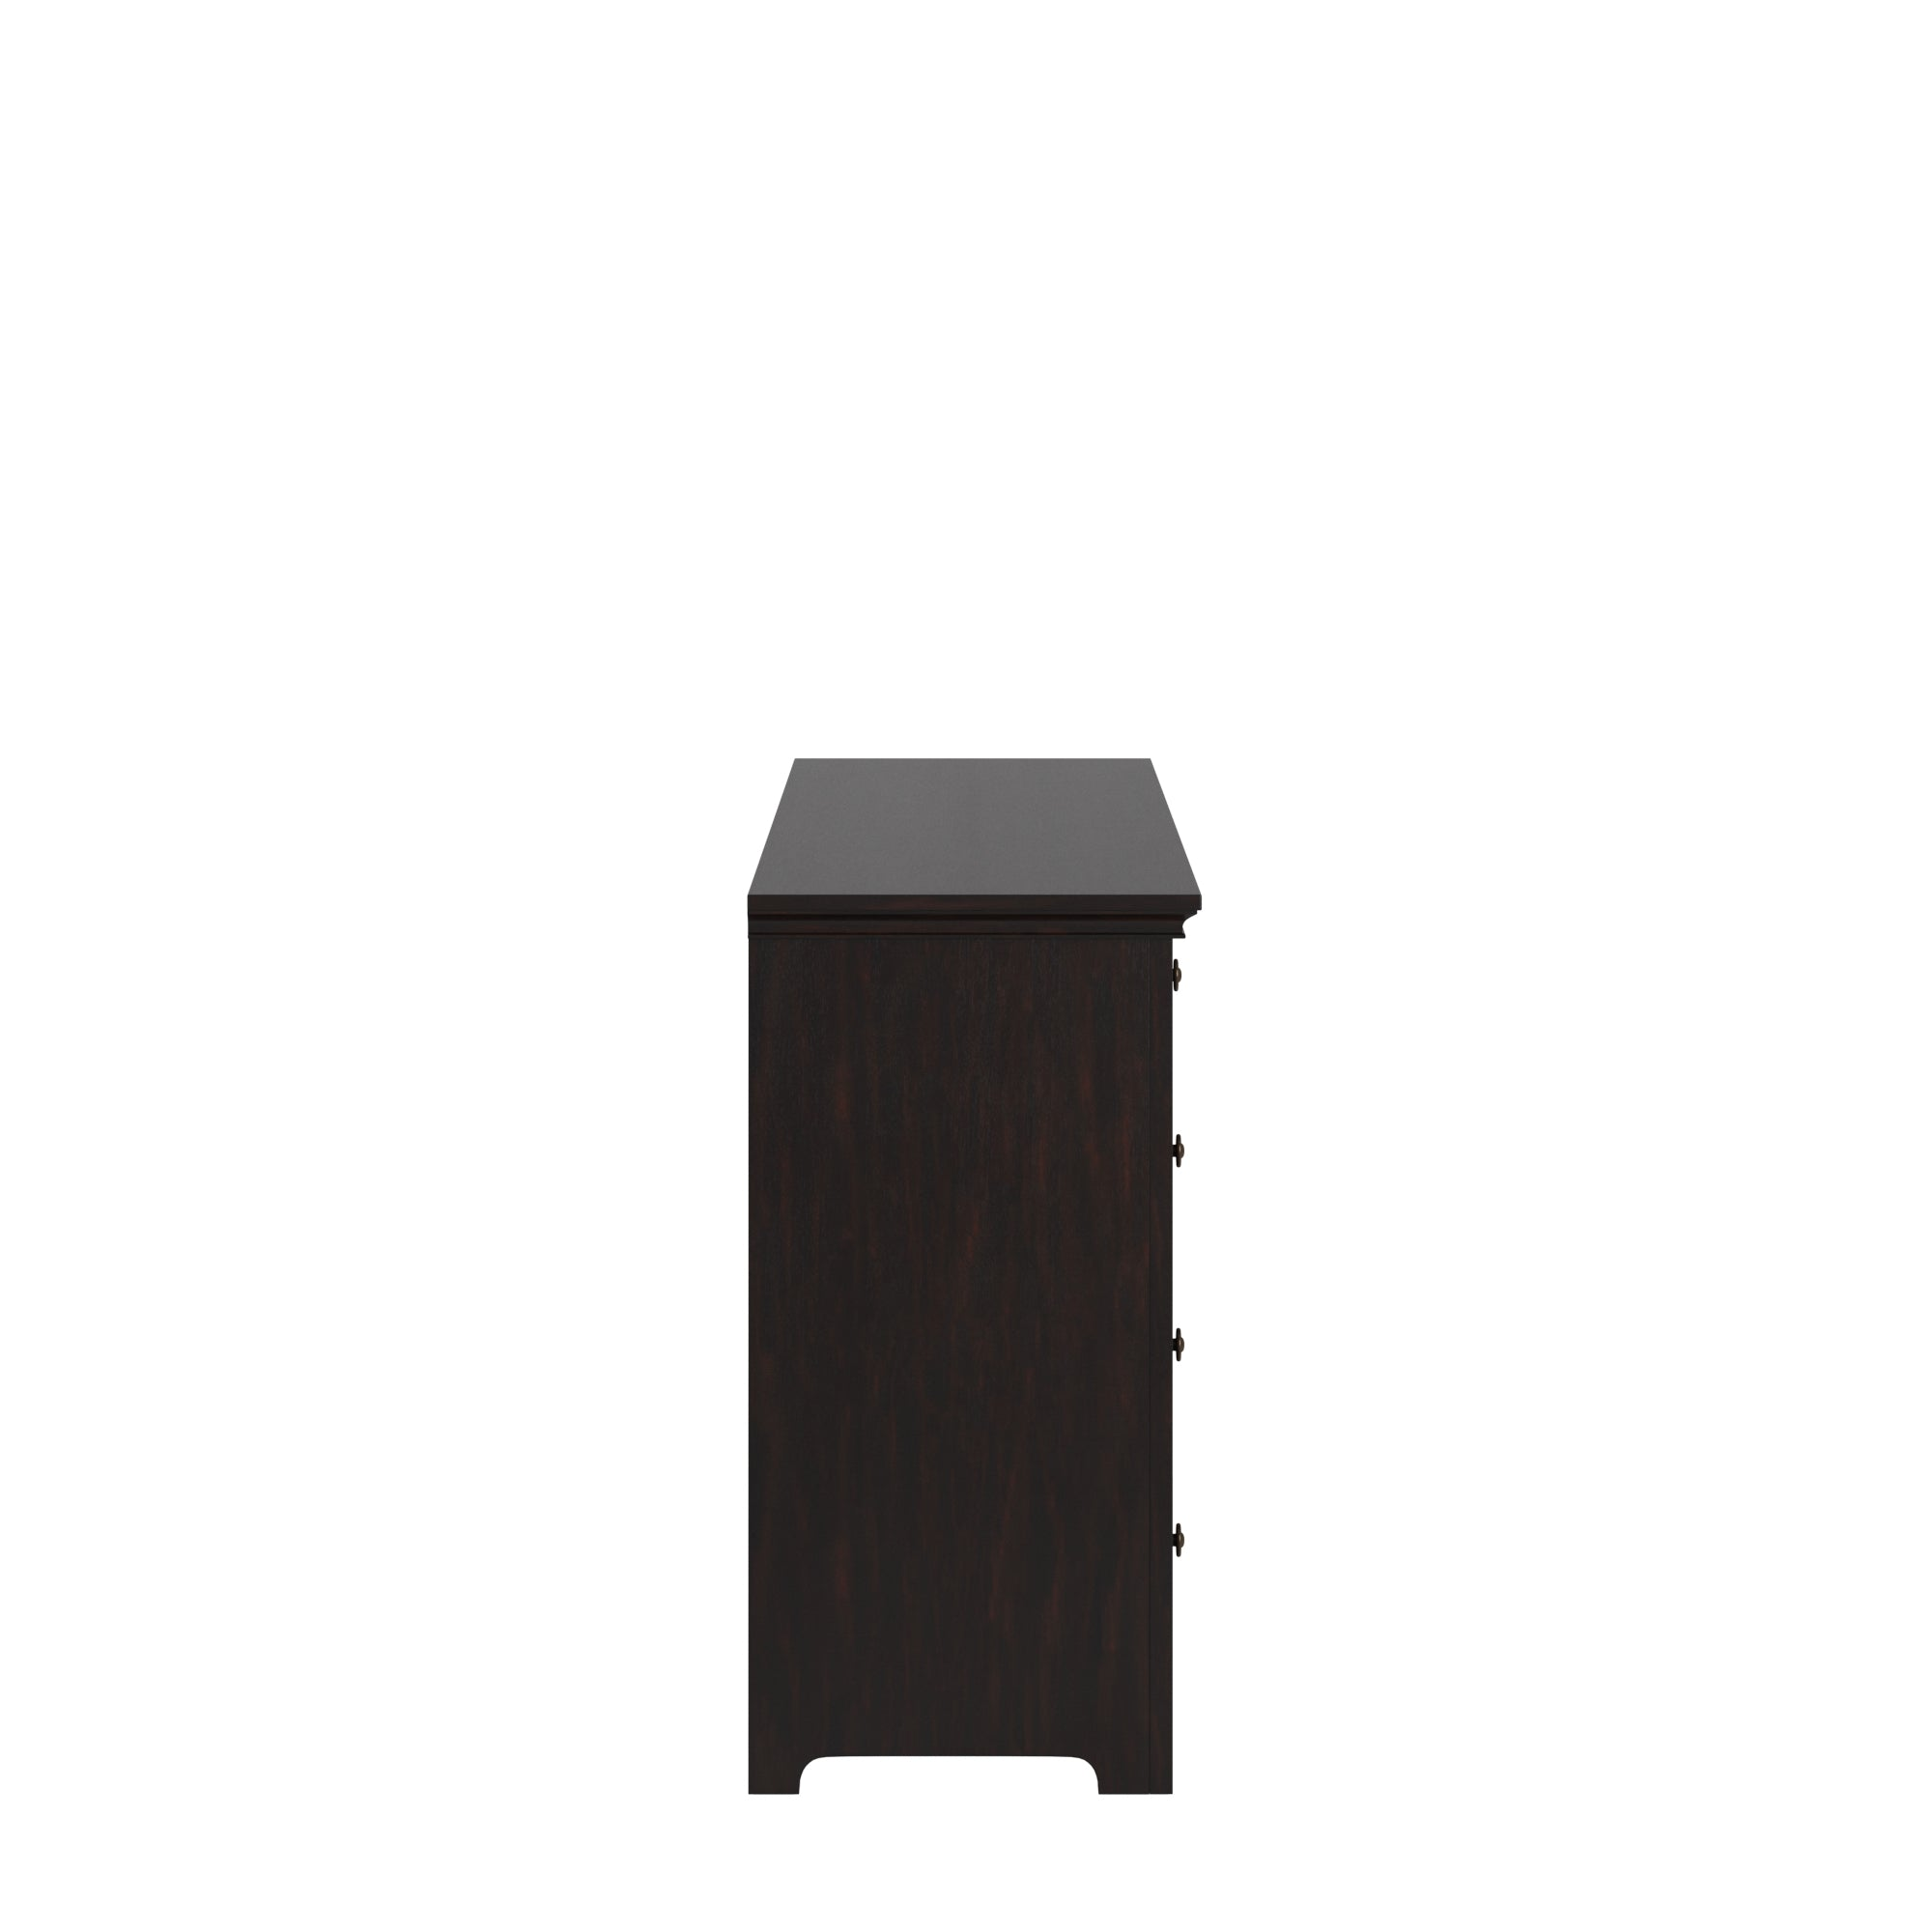 9-drawer Wood Modular Storage Dresser - Black Color Finish